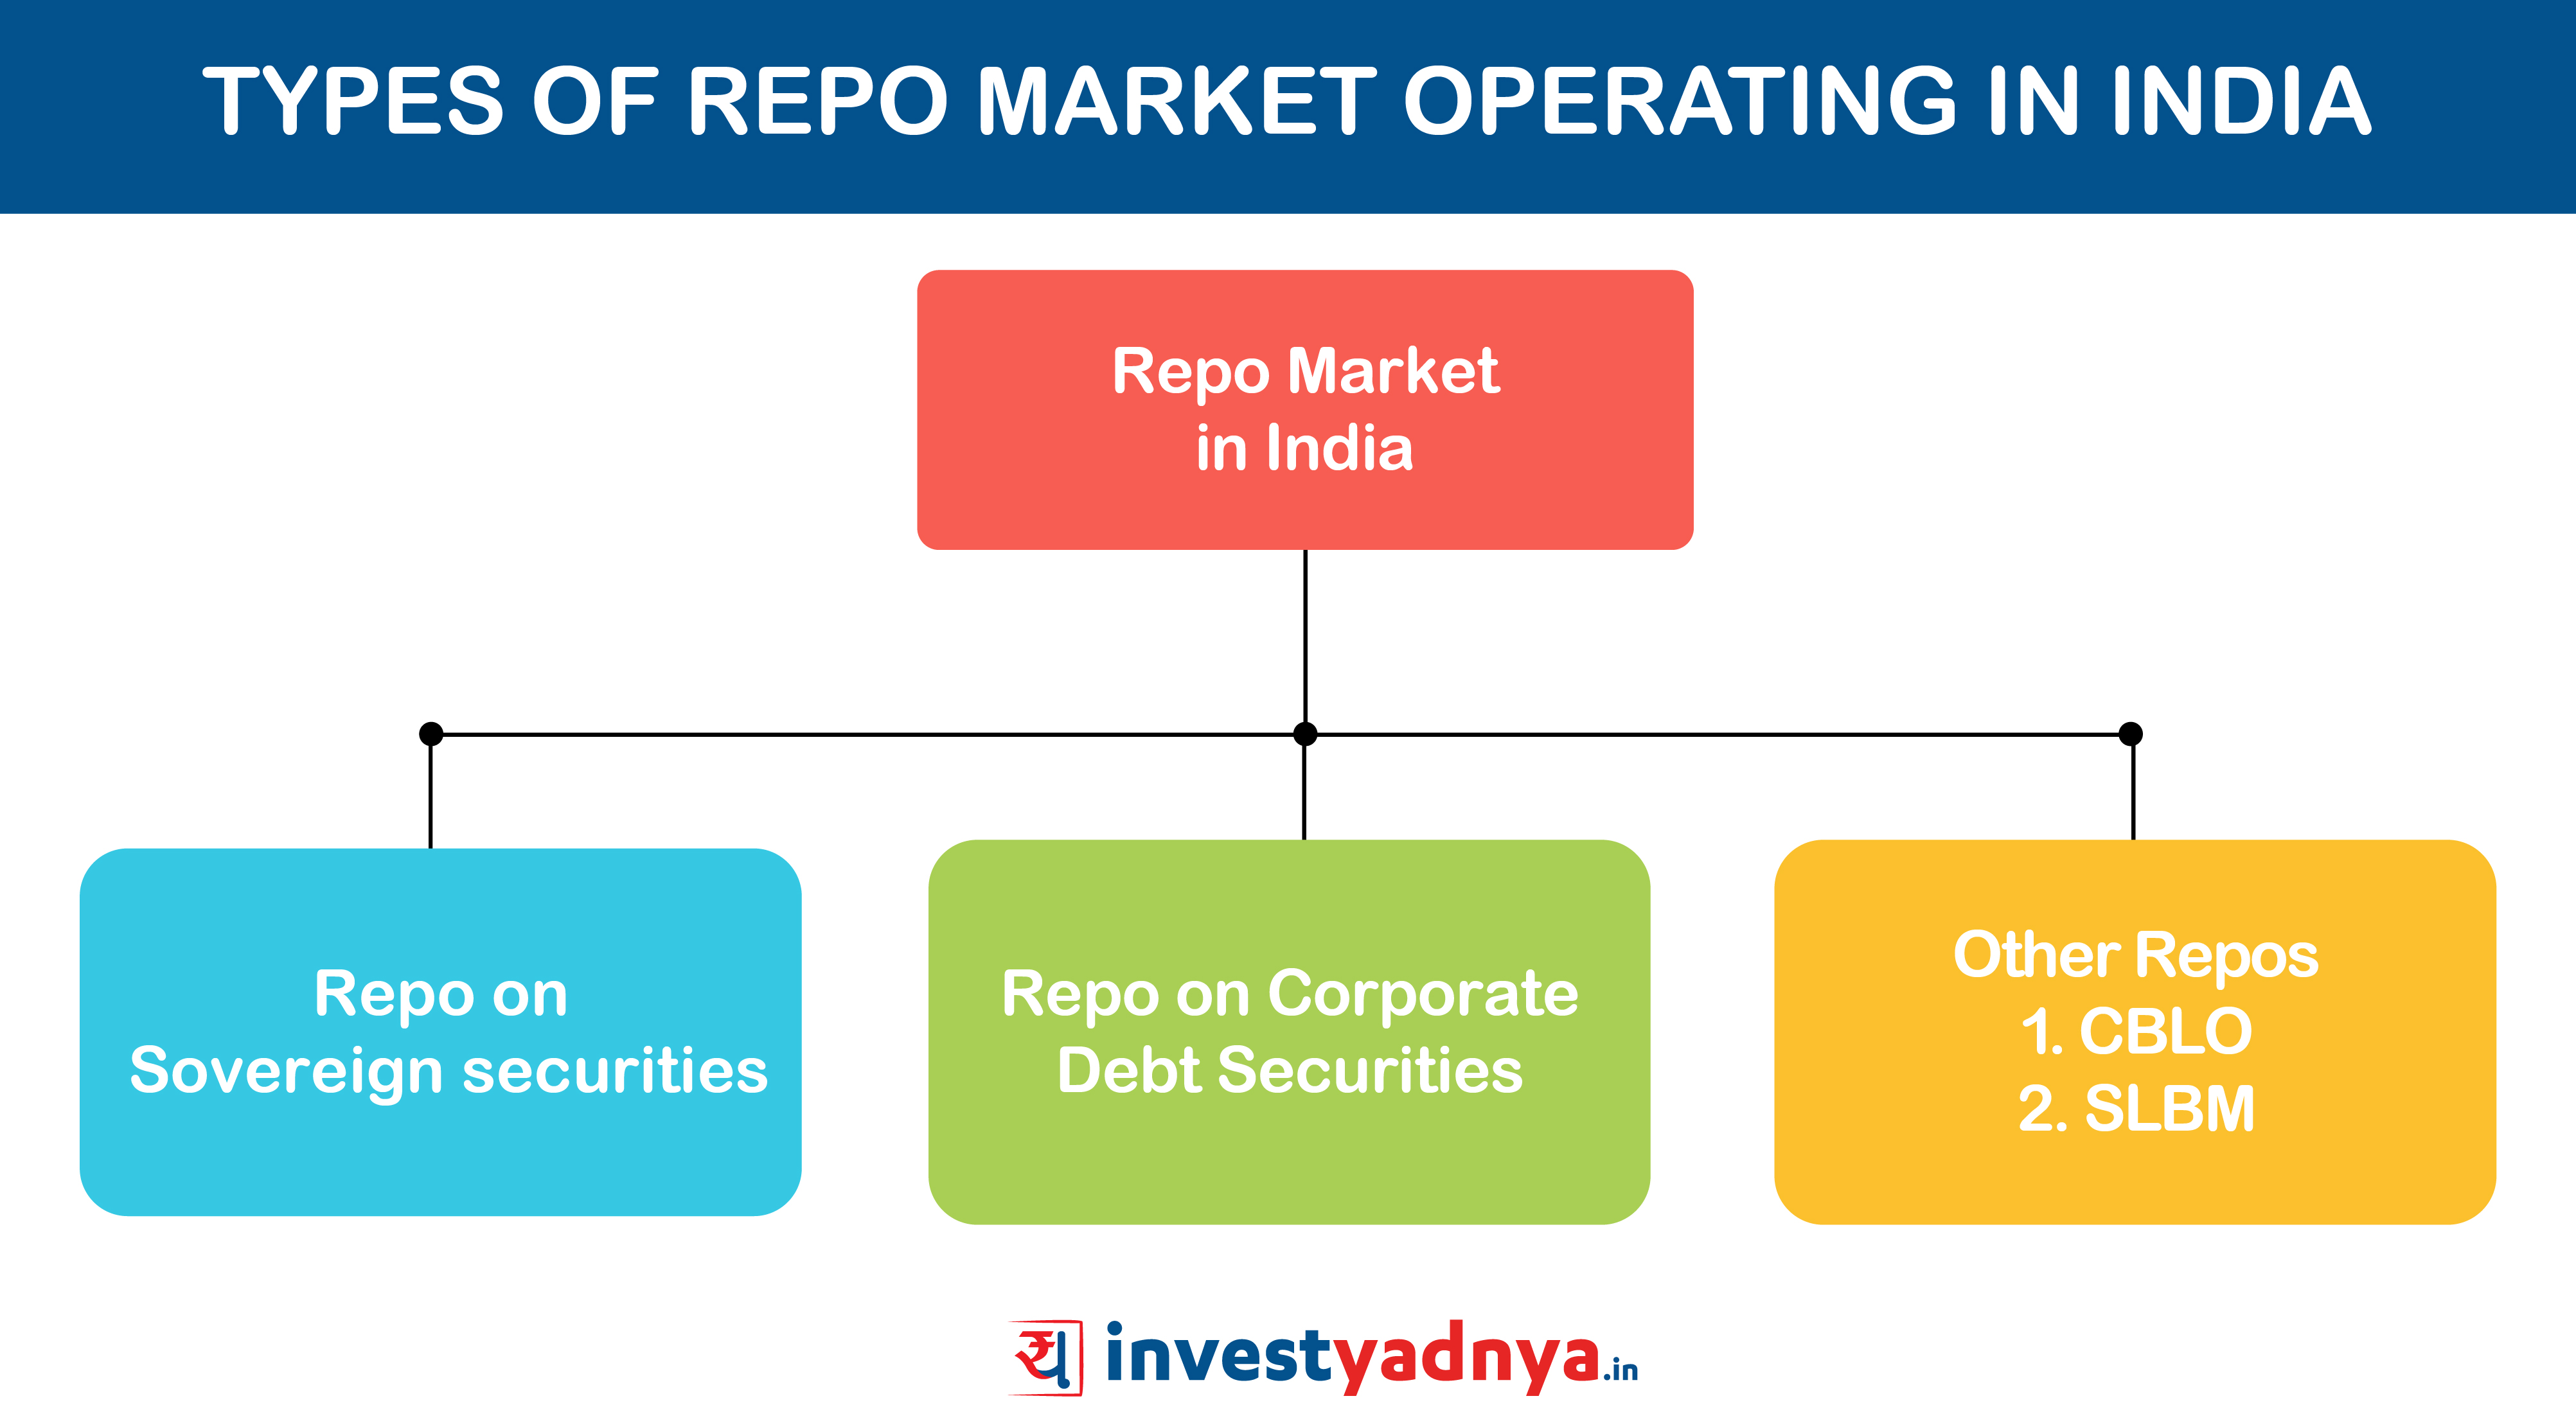 Types of Repo Market Operating in India